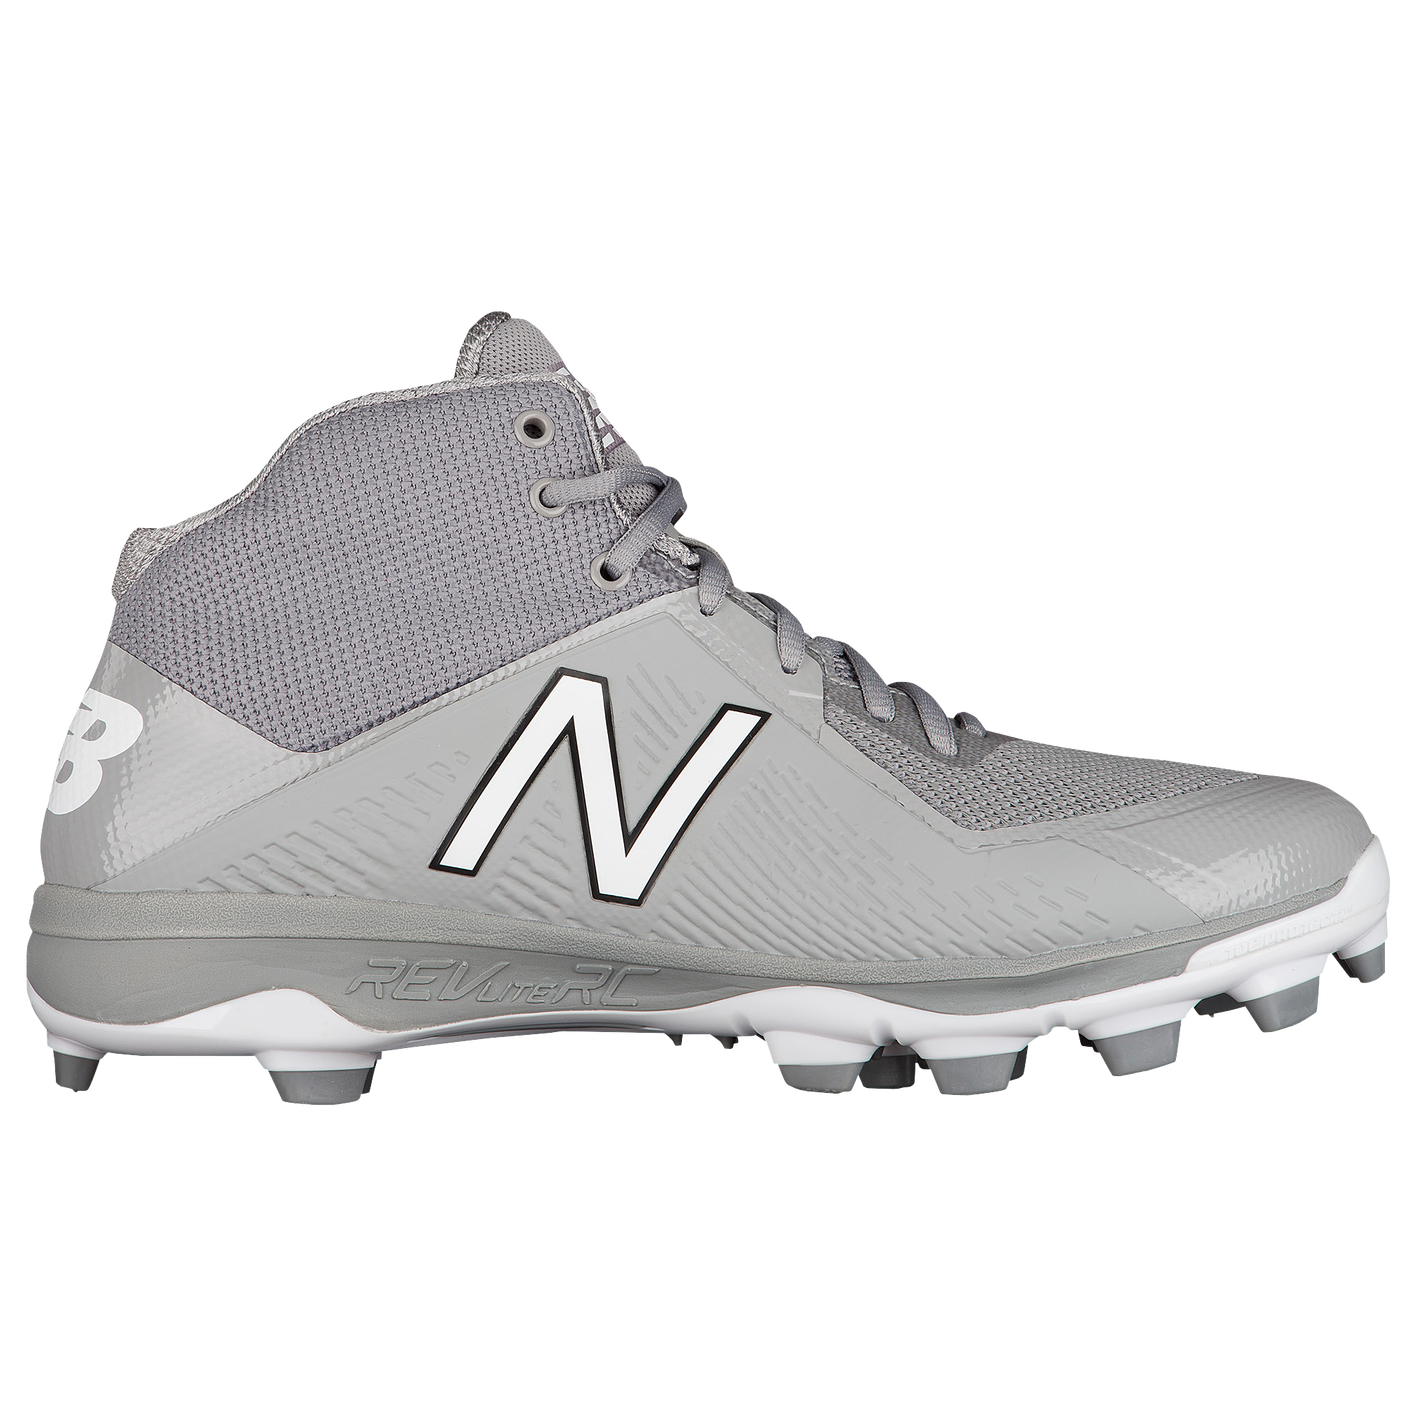 85c989e5258 New Balance 4040v4 TPU Mid - Men s - Baseball - Shoes - Grey Grey